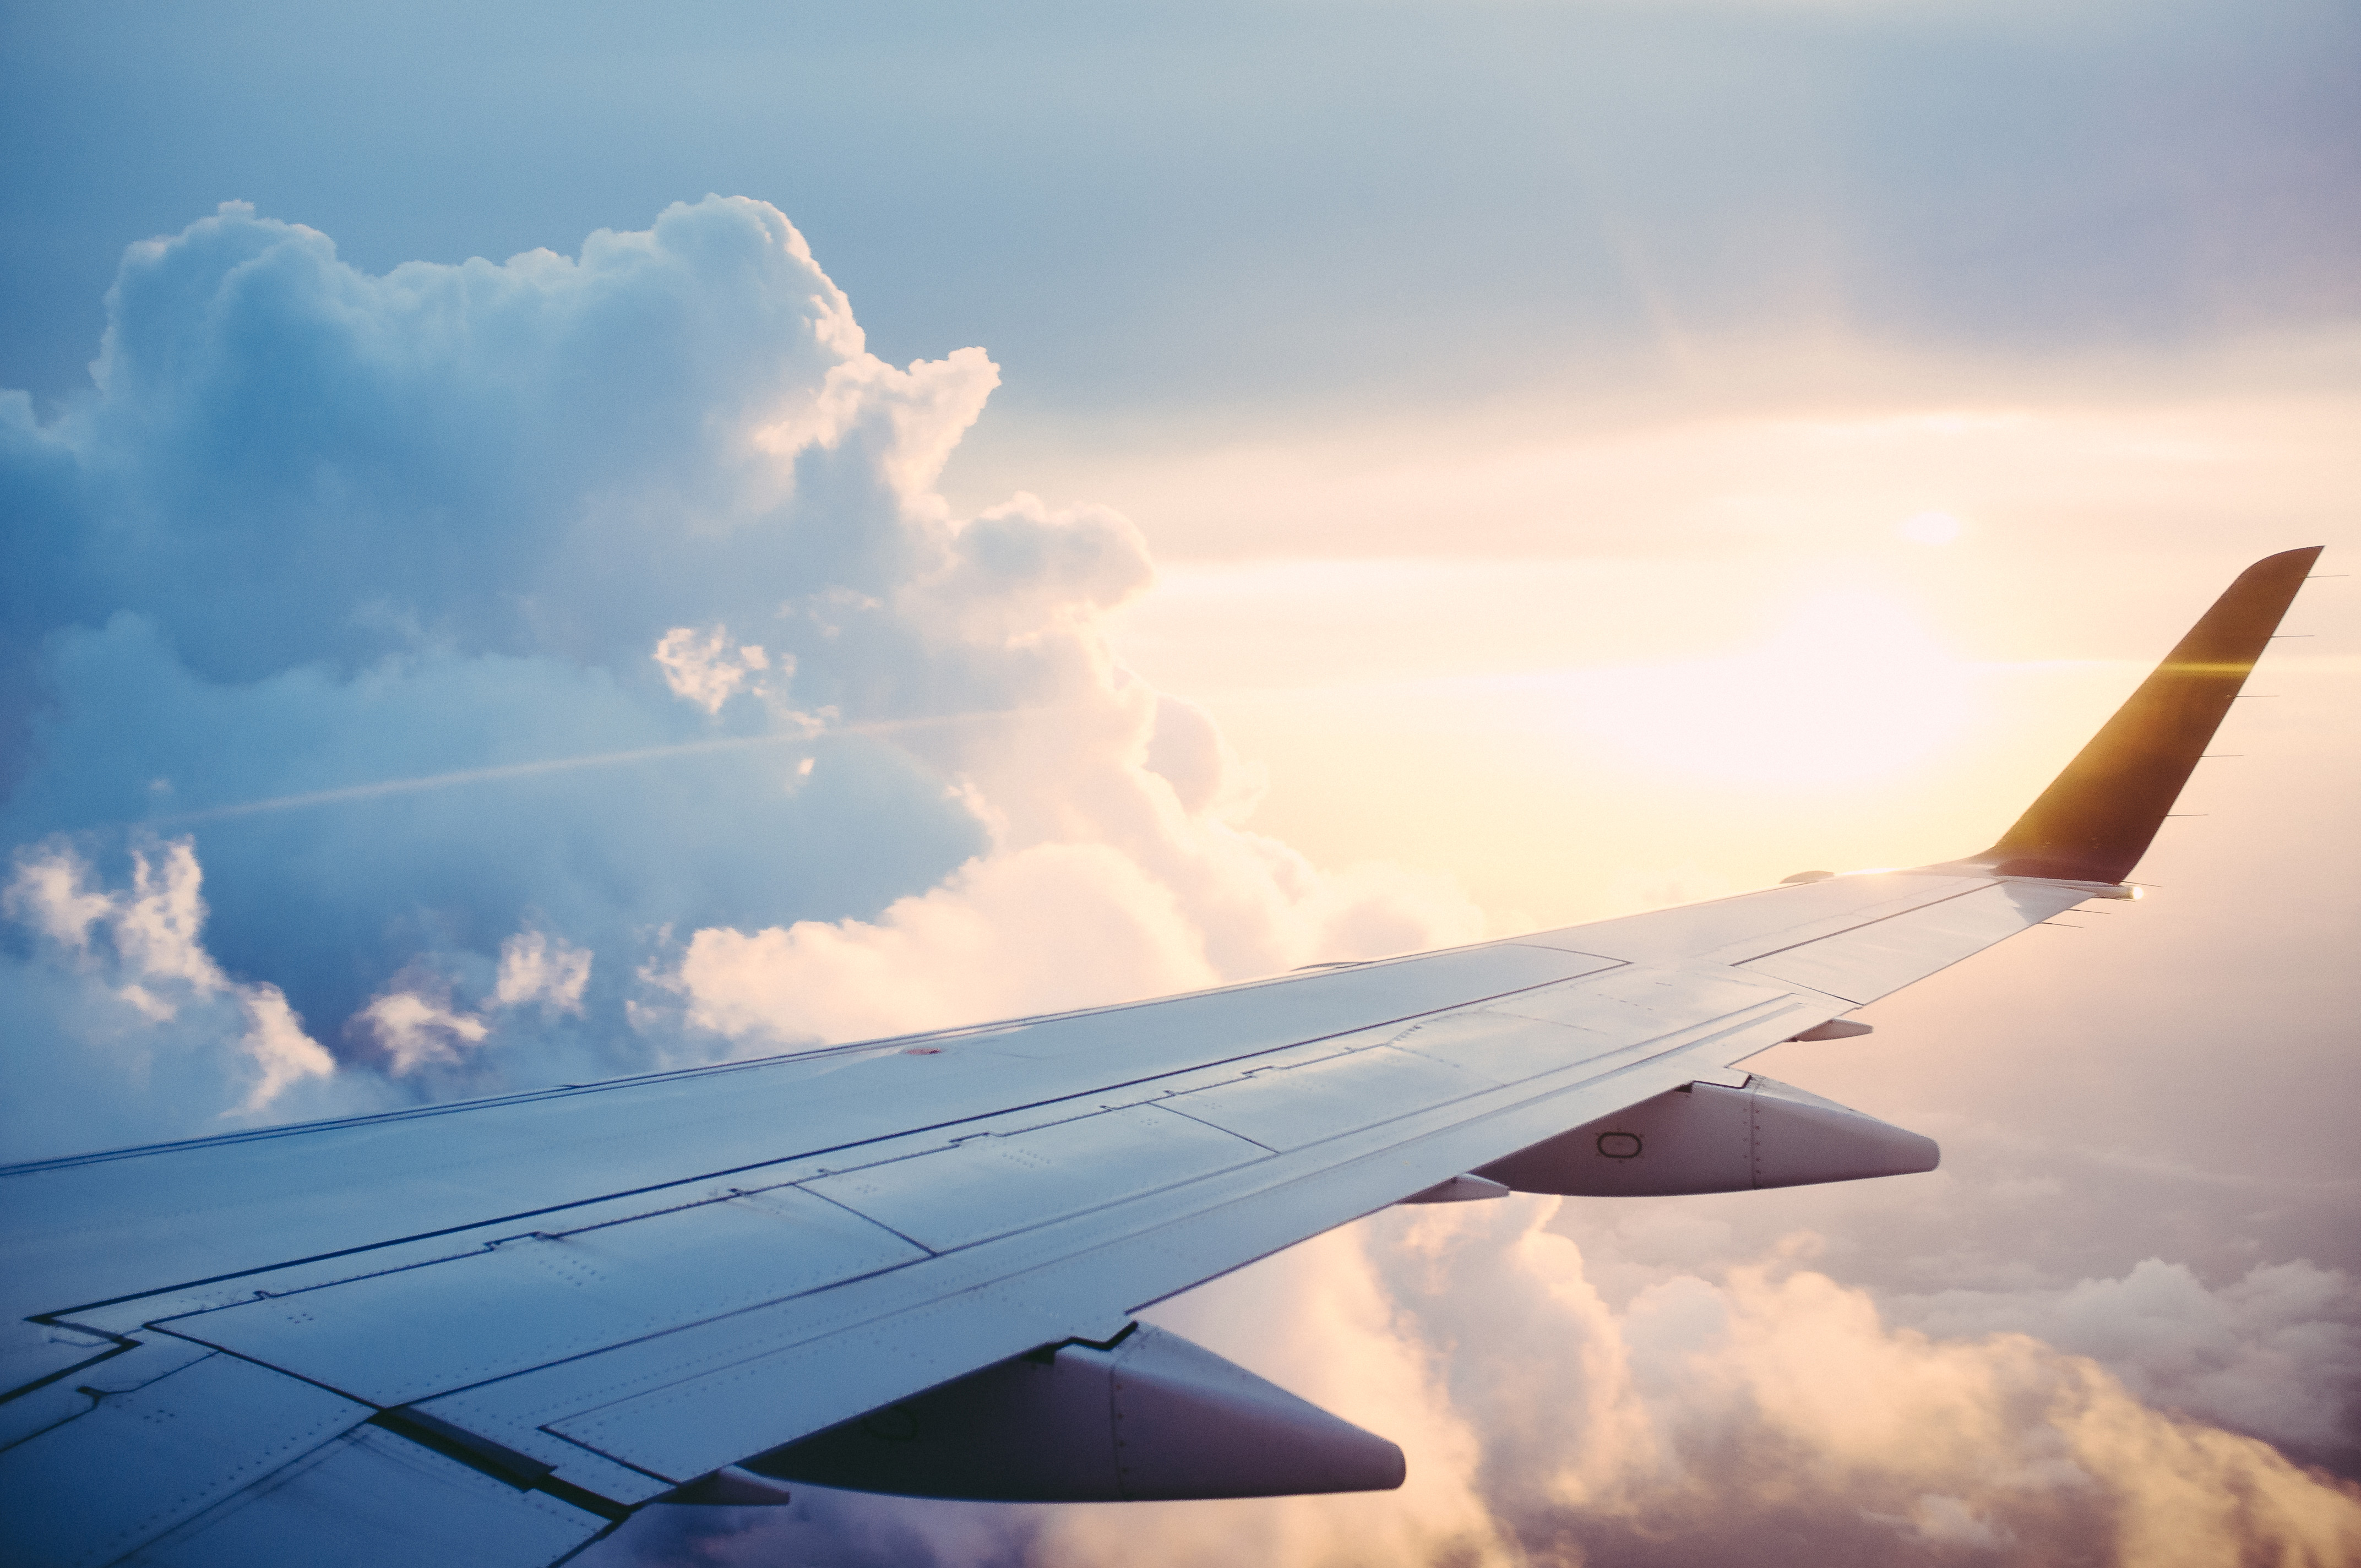 Wing aircraft in flight, airplane, wing, flight, flying, travel, transportation, sky, clouds, sunset, aerial, view